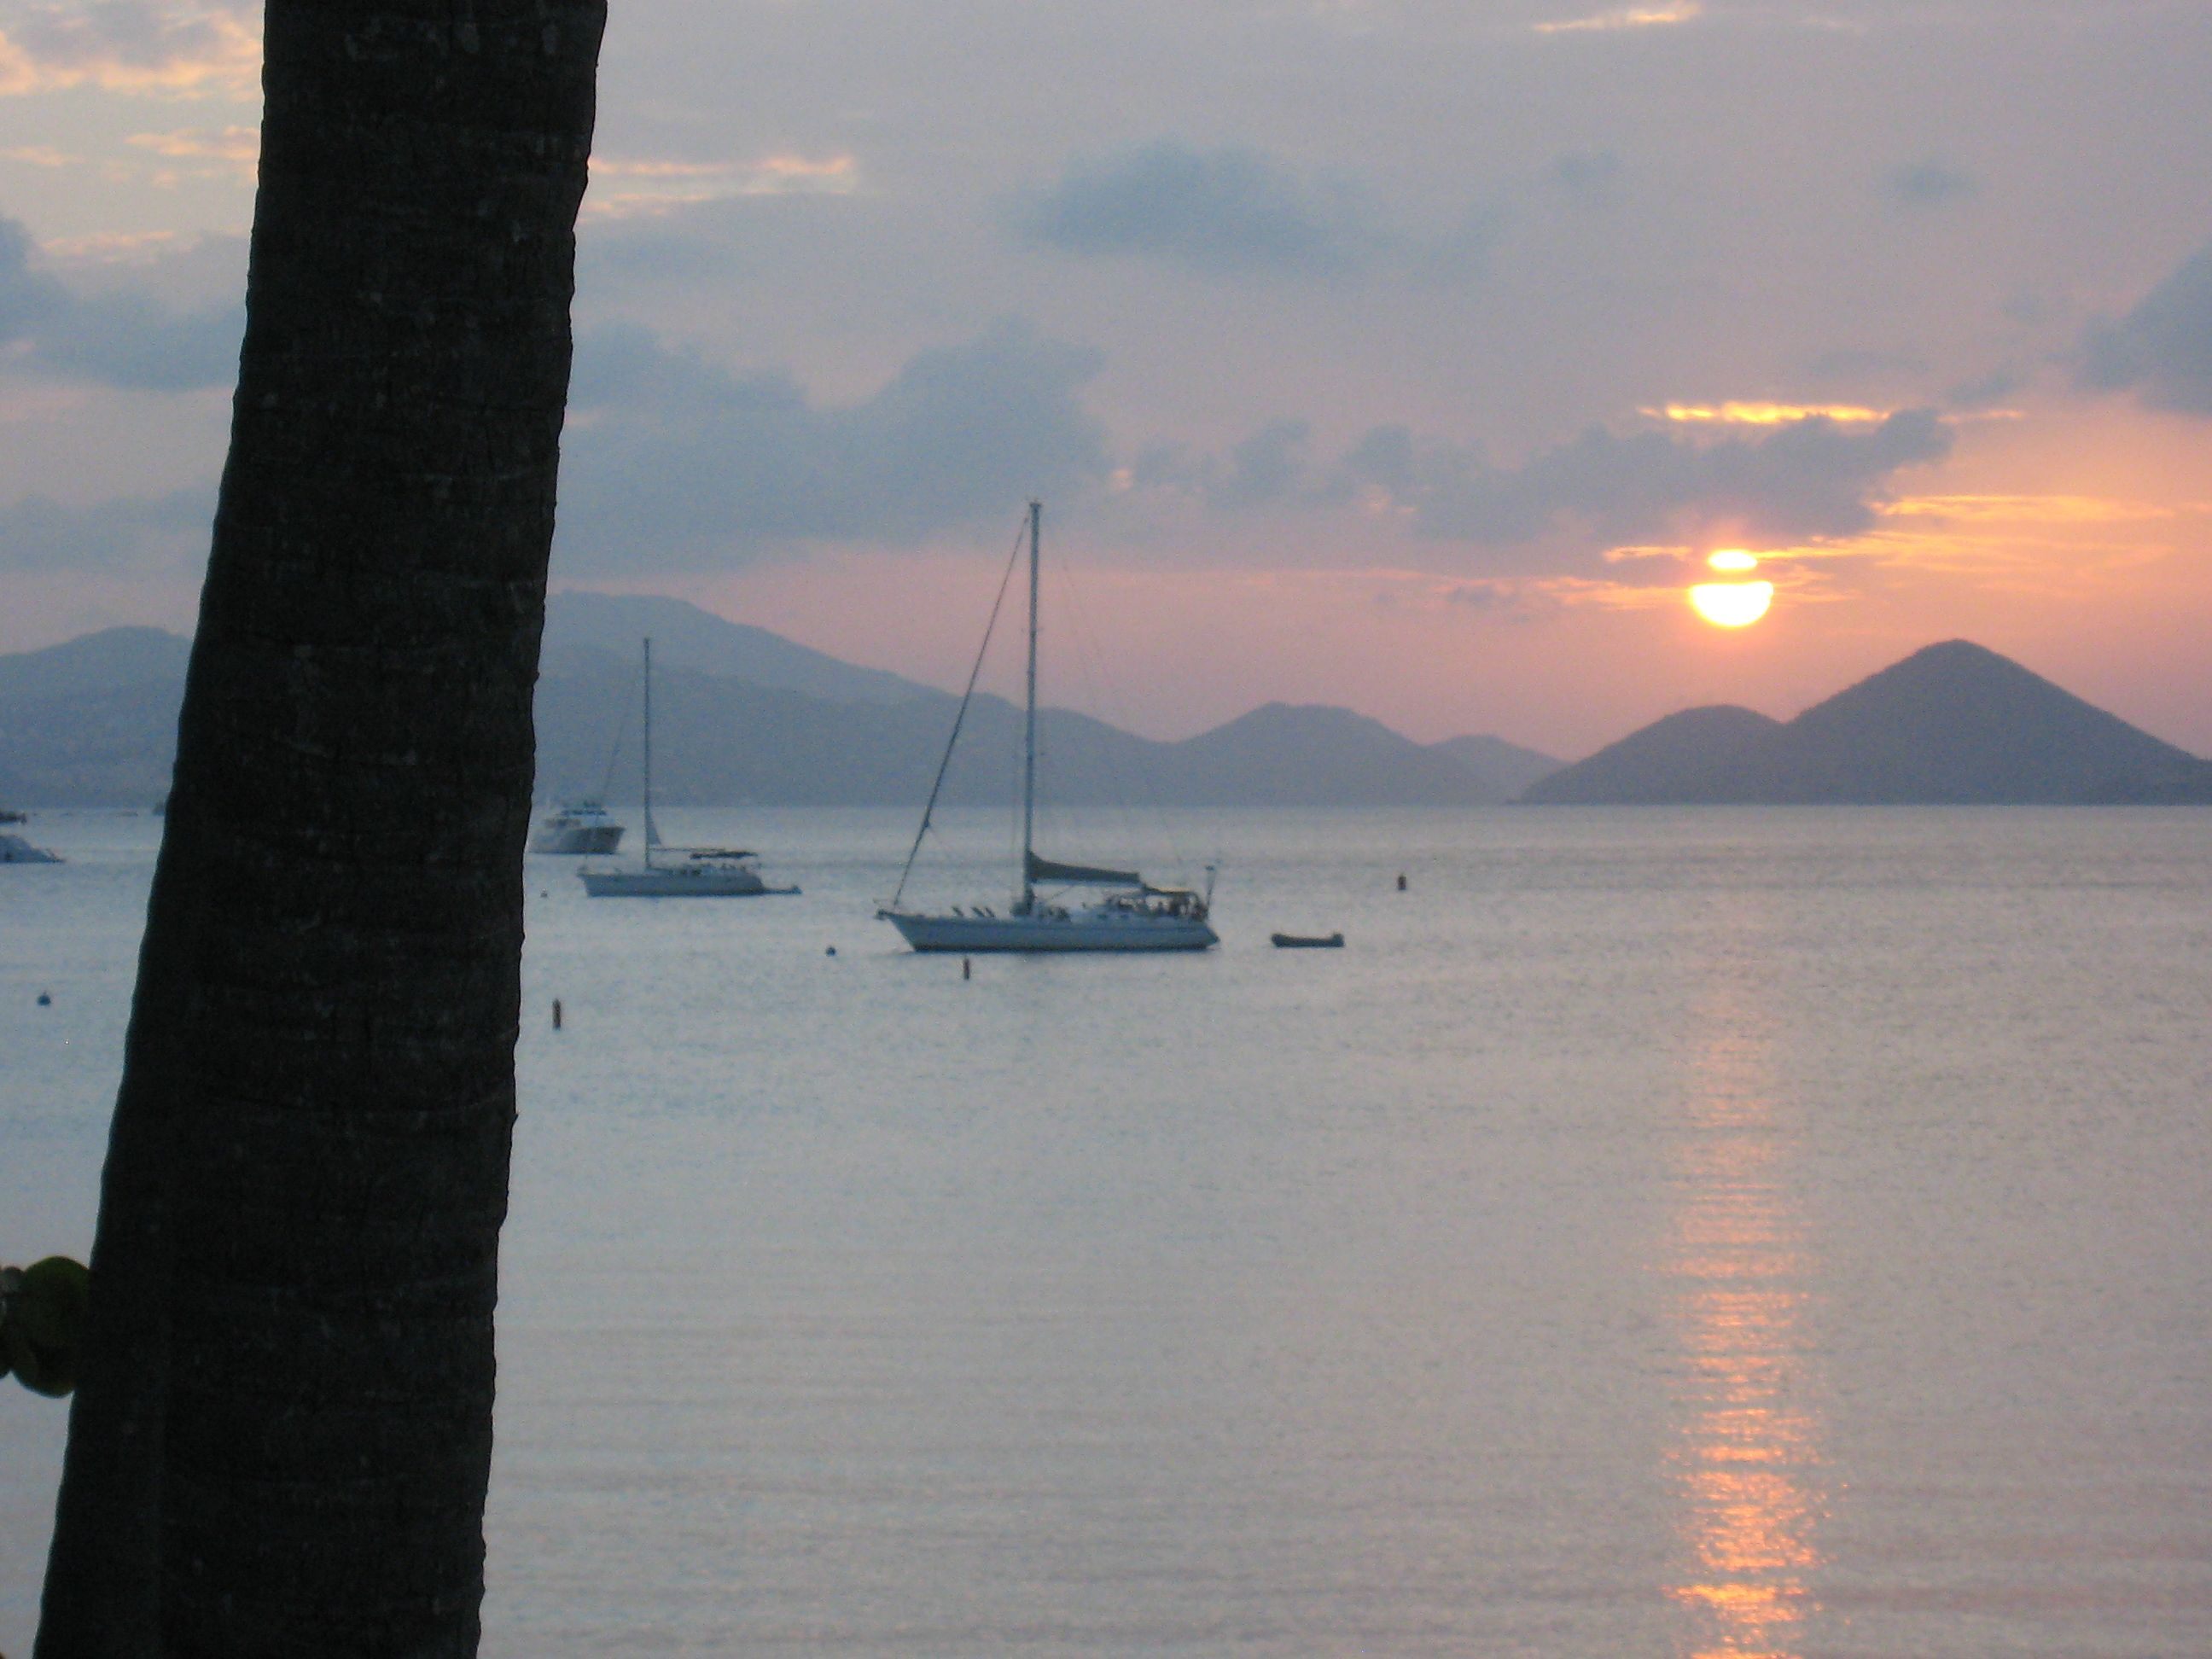 Sunset view over Caneel Bay